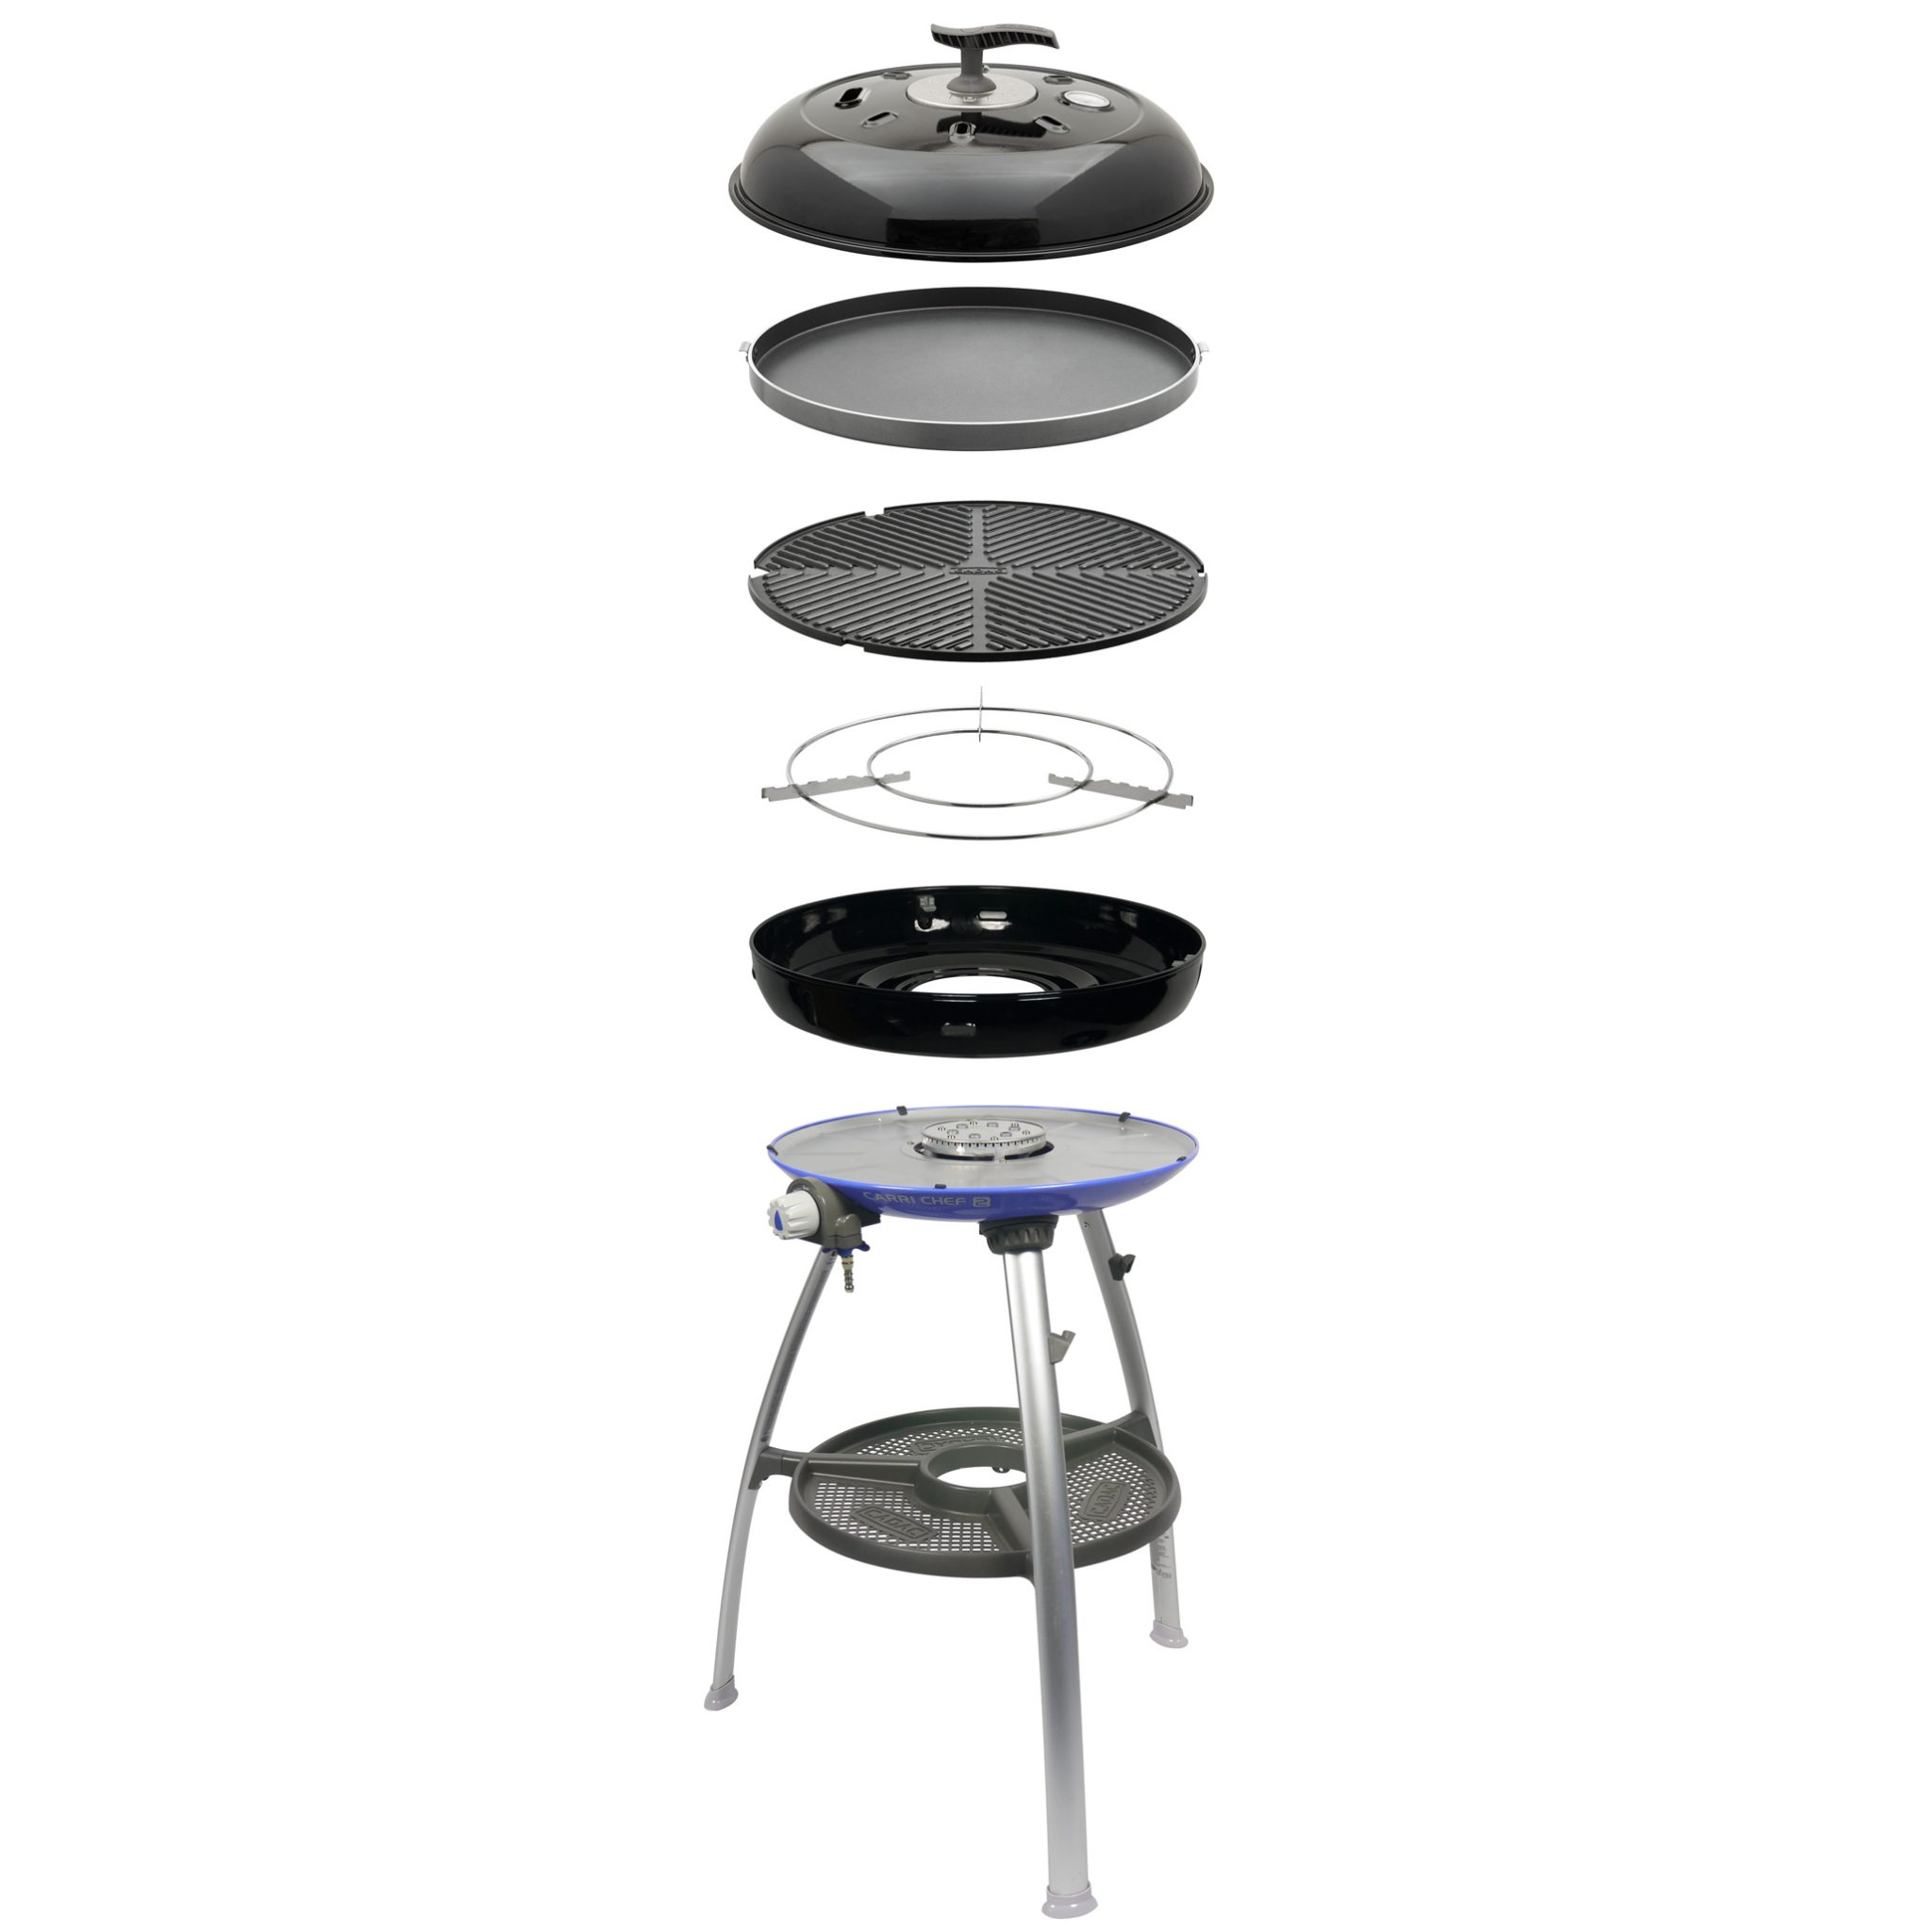 Cadac Carri Chef Deluxe.Cadac Carri Chef 2 Bbq And Chef Pan Combo